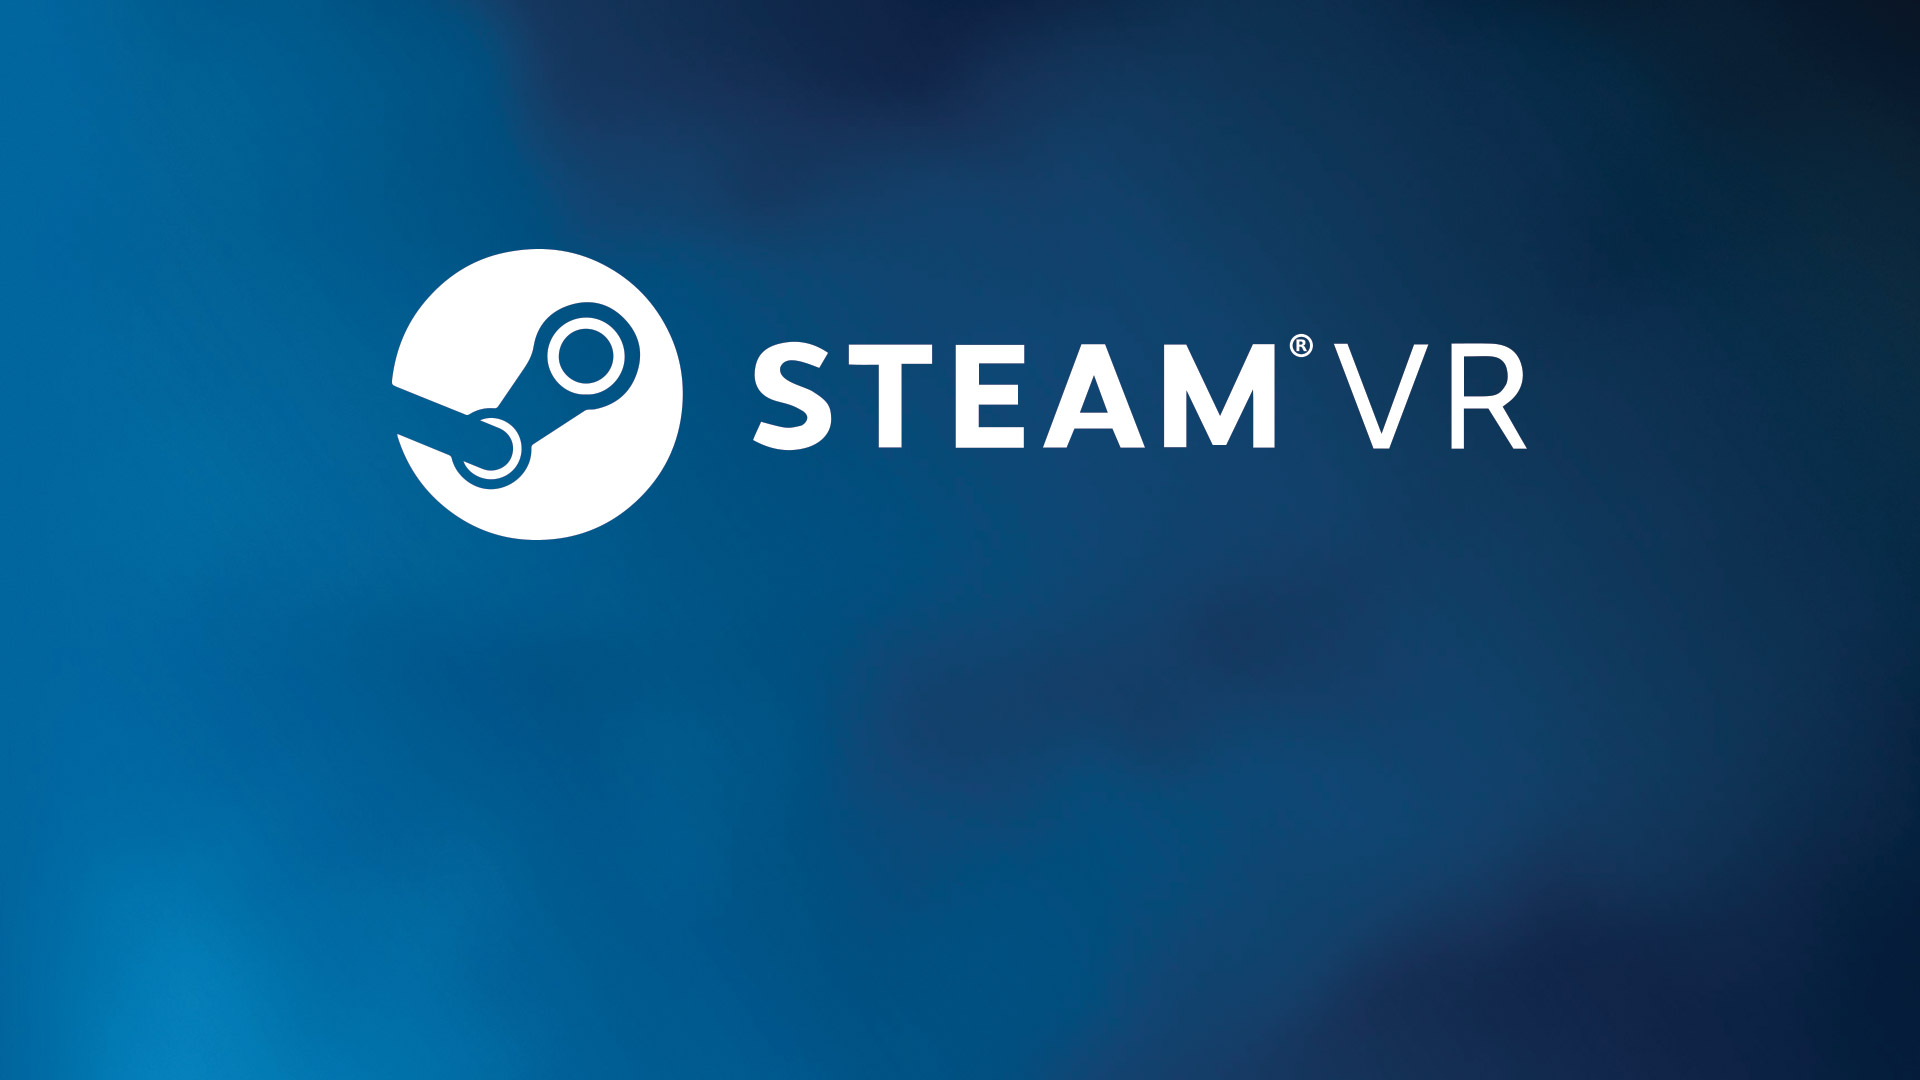 593a9012852 Oculus Rift Surpasses HTC Vive in Steam Majority Market Share for ...